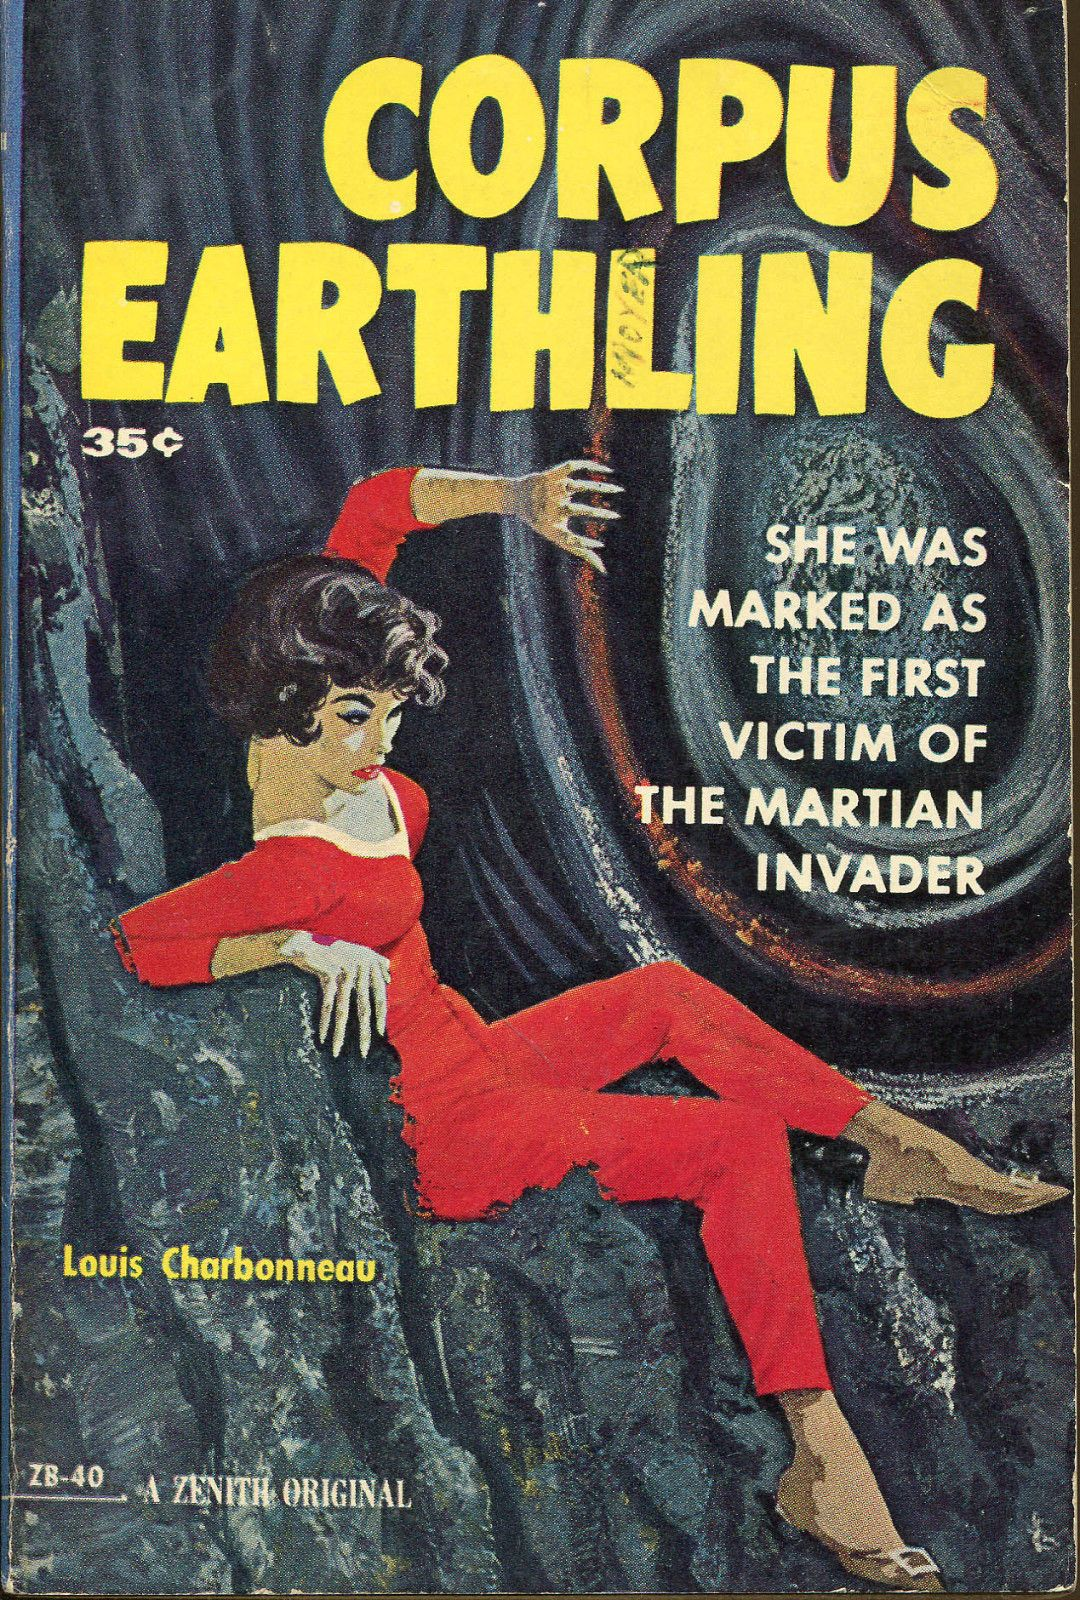 Corpus Earthling Zenith Books 1960 Pulp Cover Art Vintage Book Covers Canvas Giclee Pulp Science Fiction